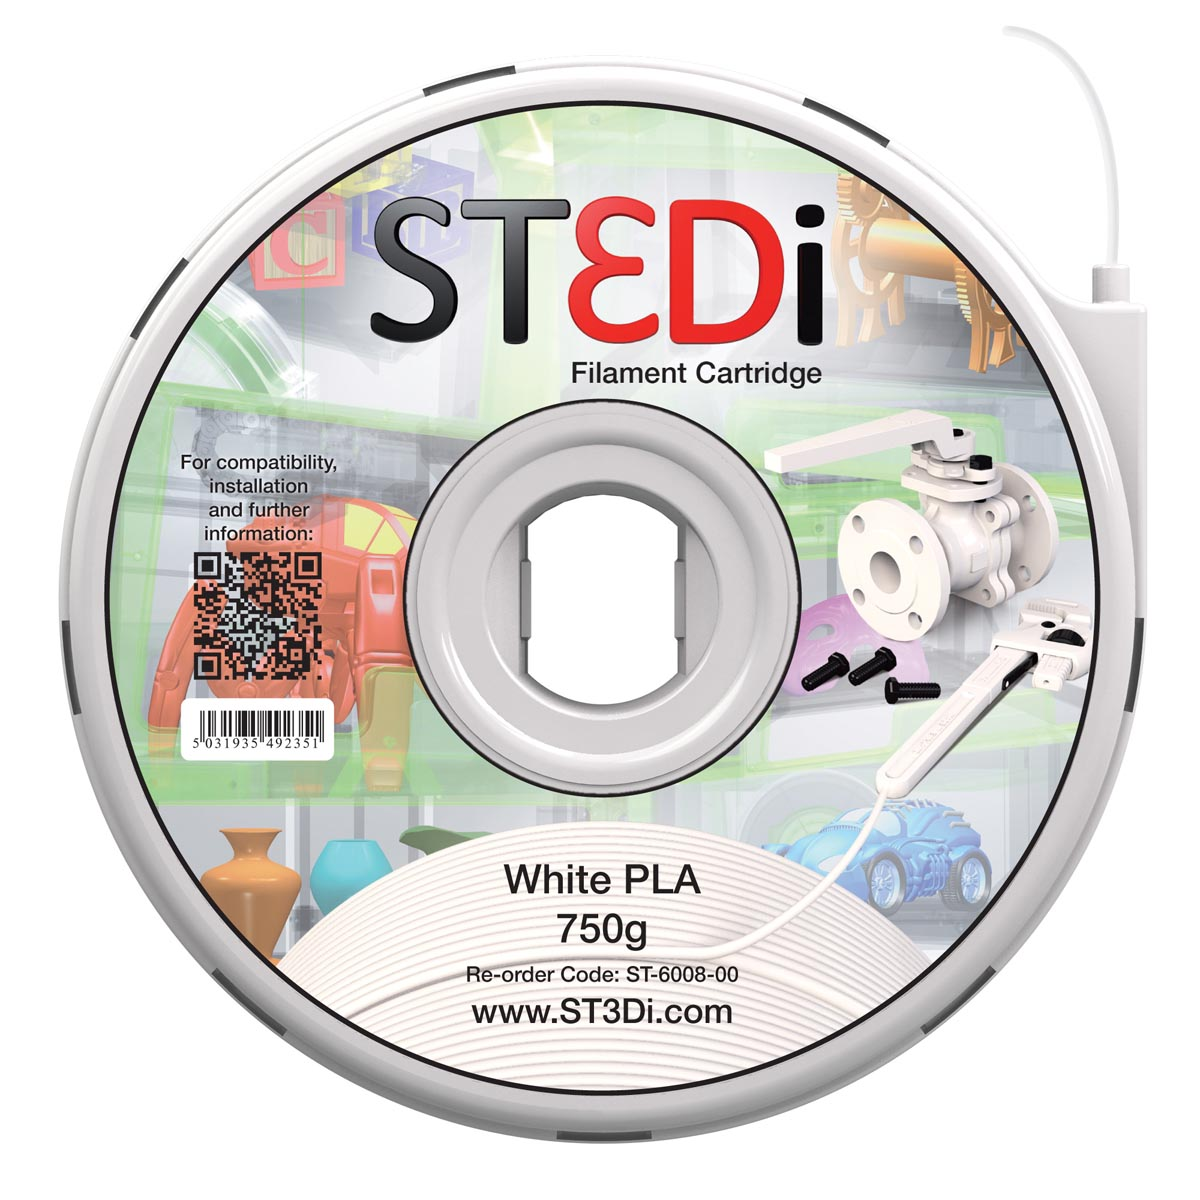 St3di cartridge pla 750g wit voor st3di printer